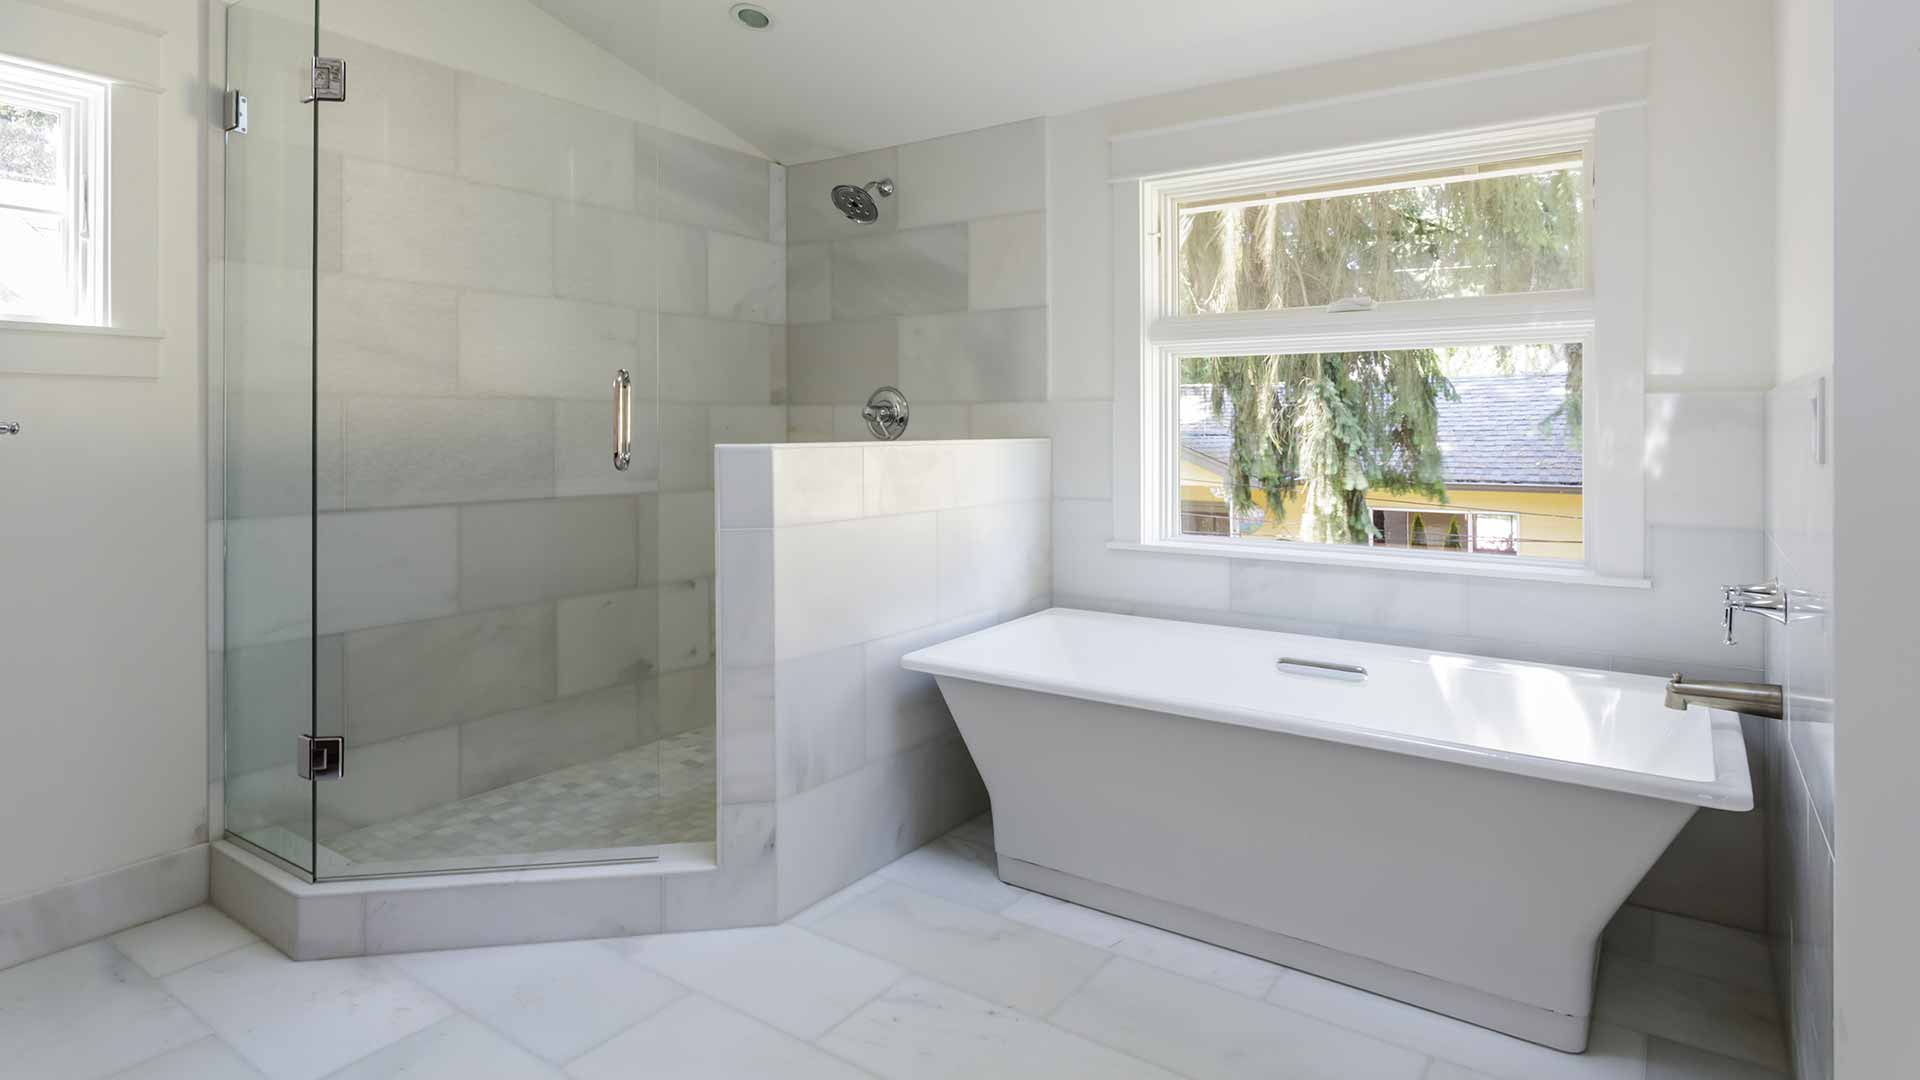 Bathtub & Shower Choices Available When Remodeling Your Bathroom